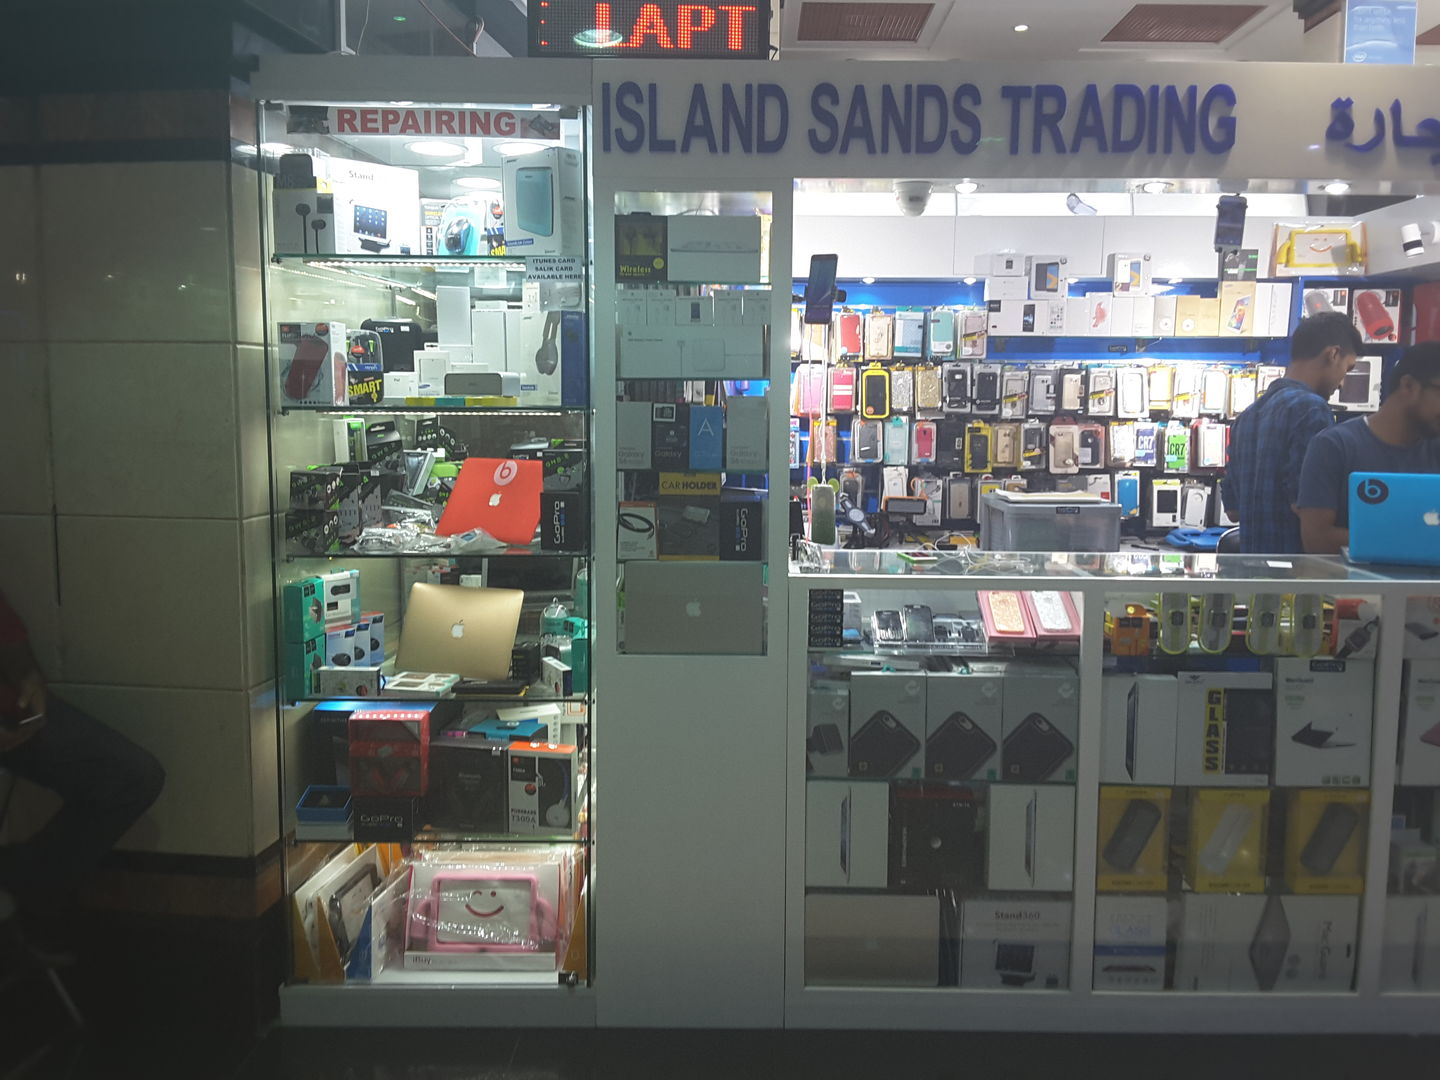 HiDubai-business-island-sands-trading-shopping-consumer-electronics-mankhool-dubai-2